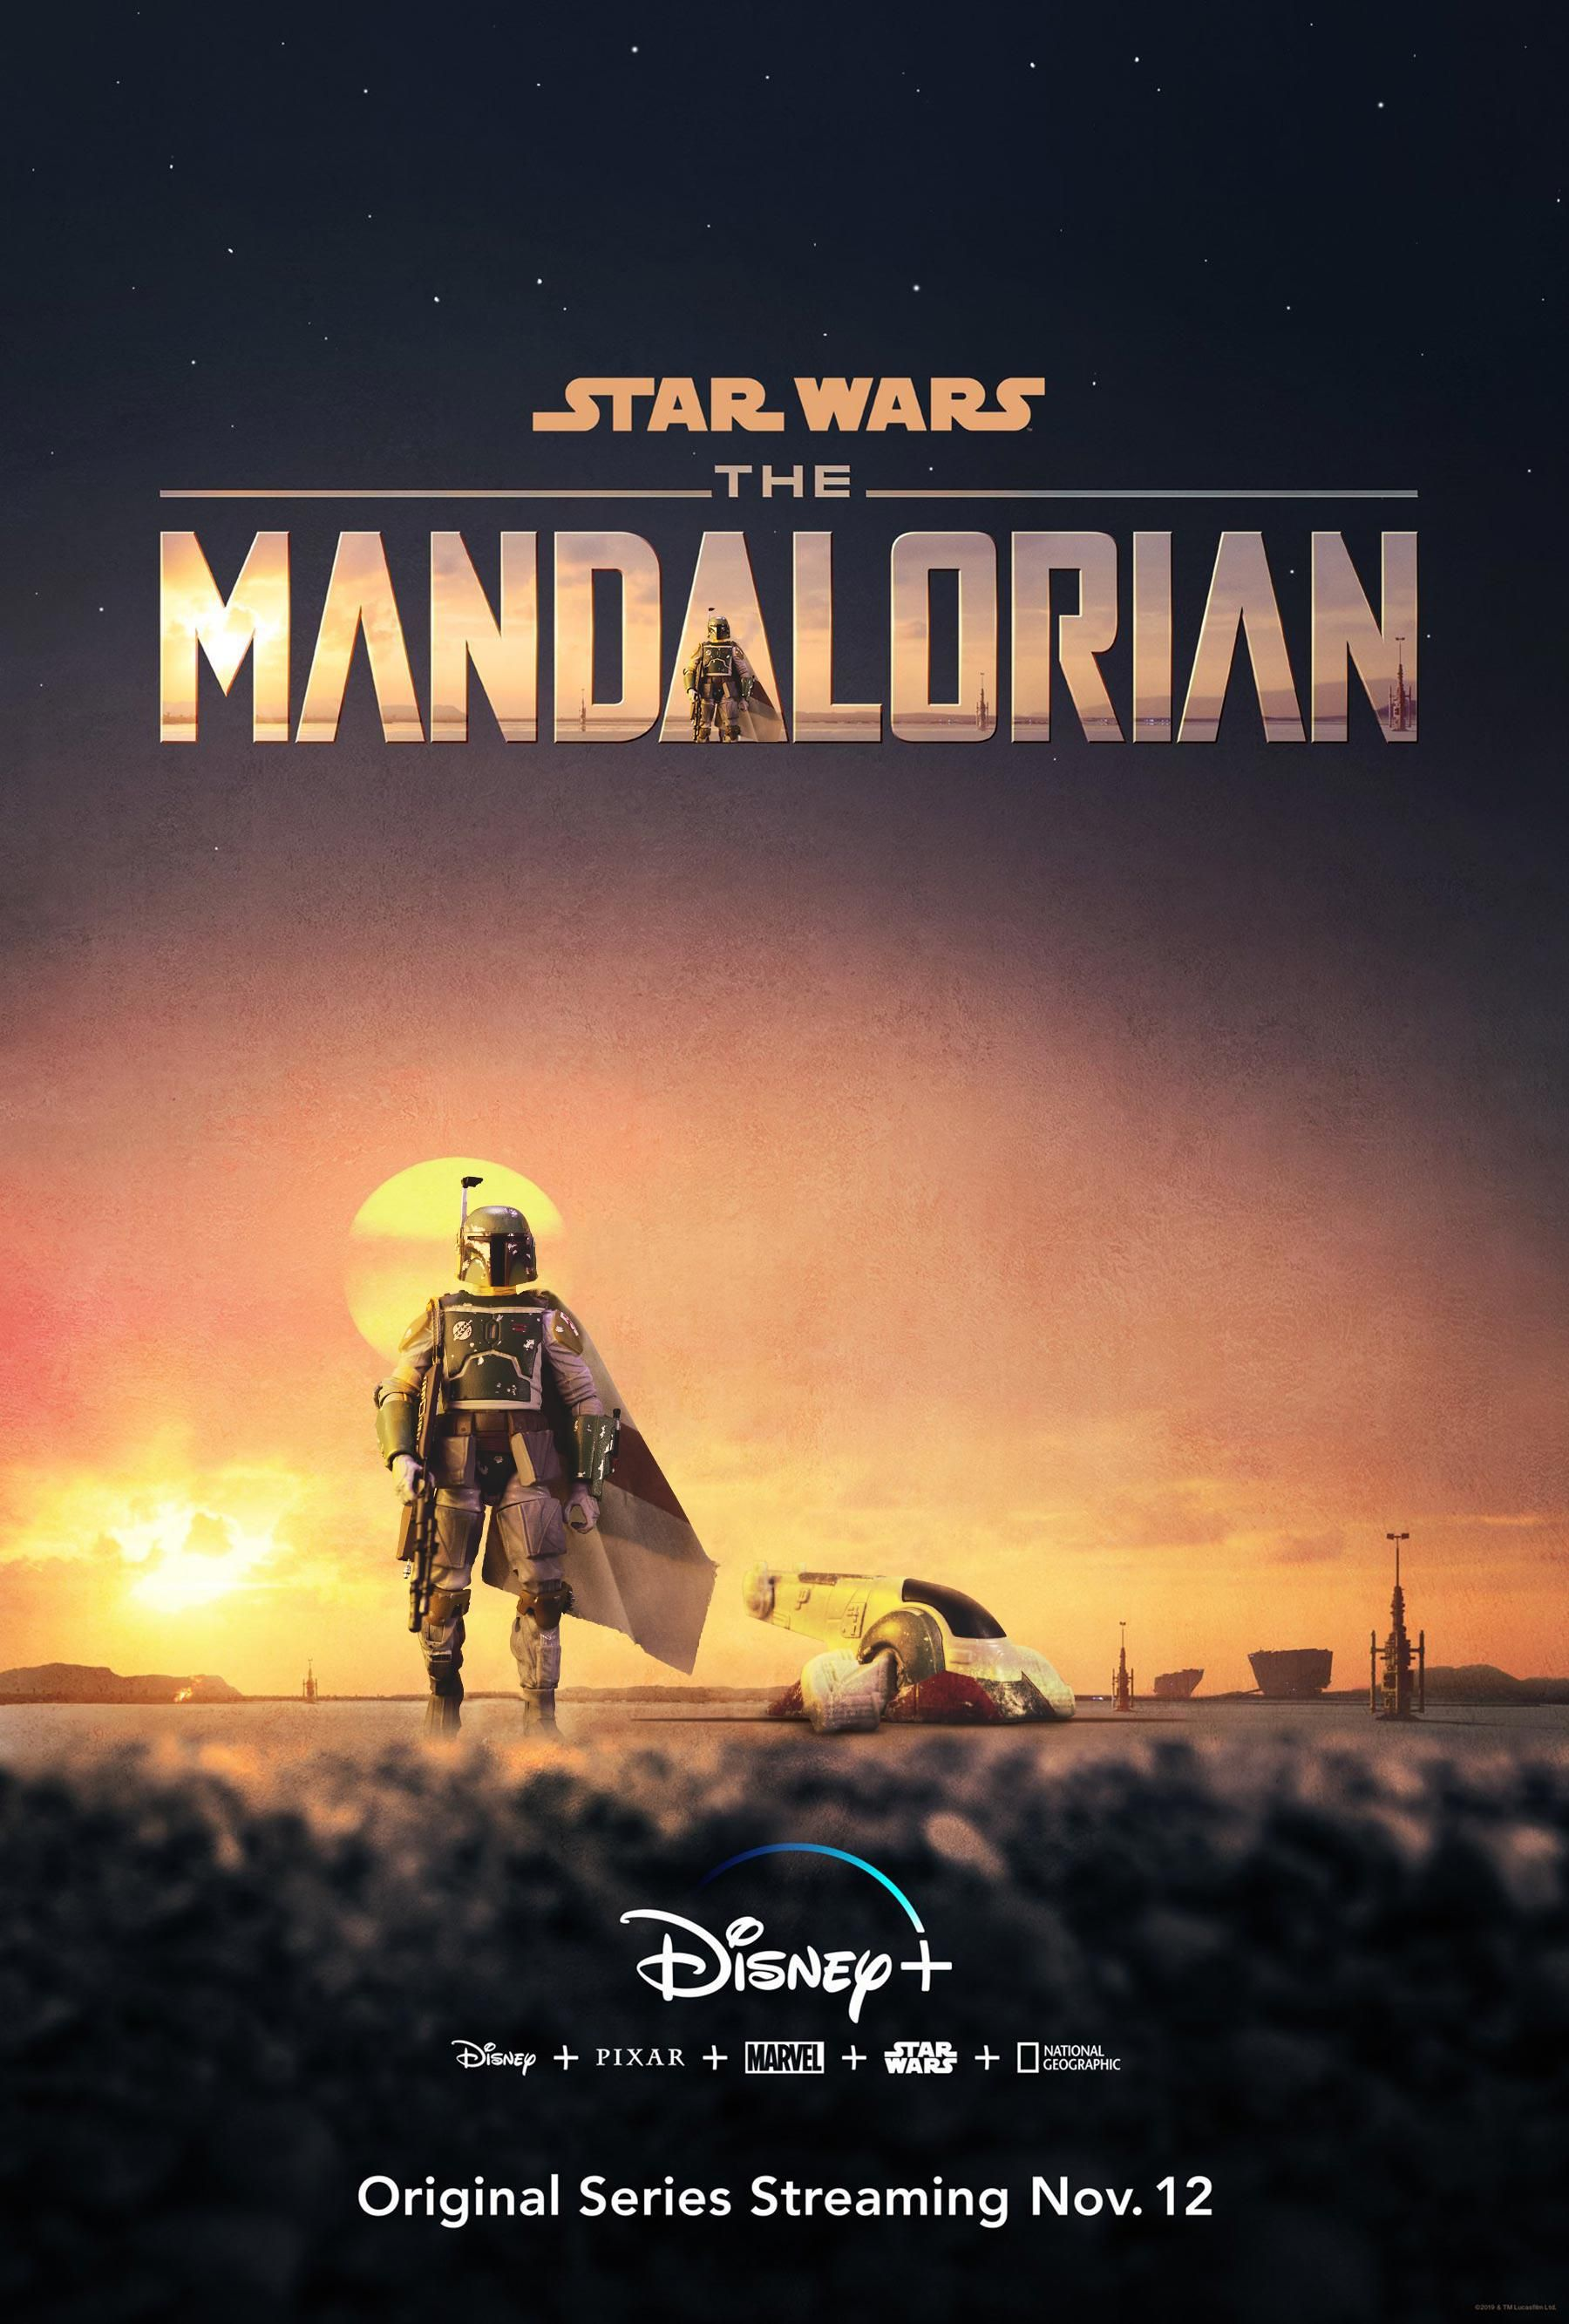 Recreating The Mandalorian poster with my Toy